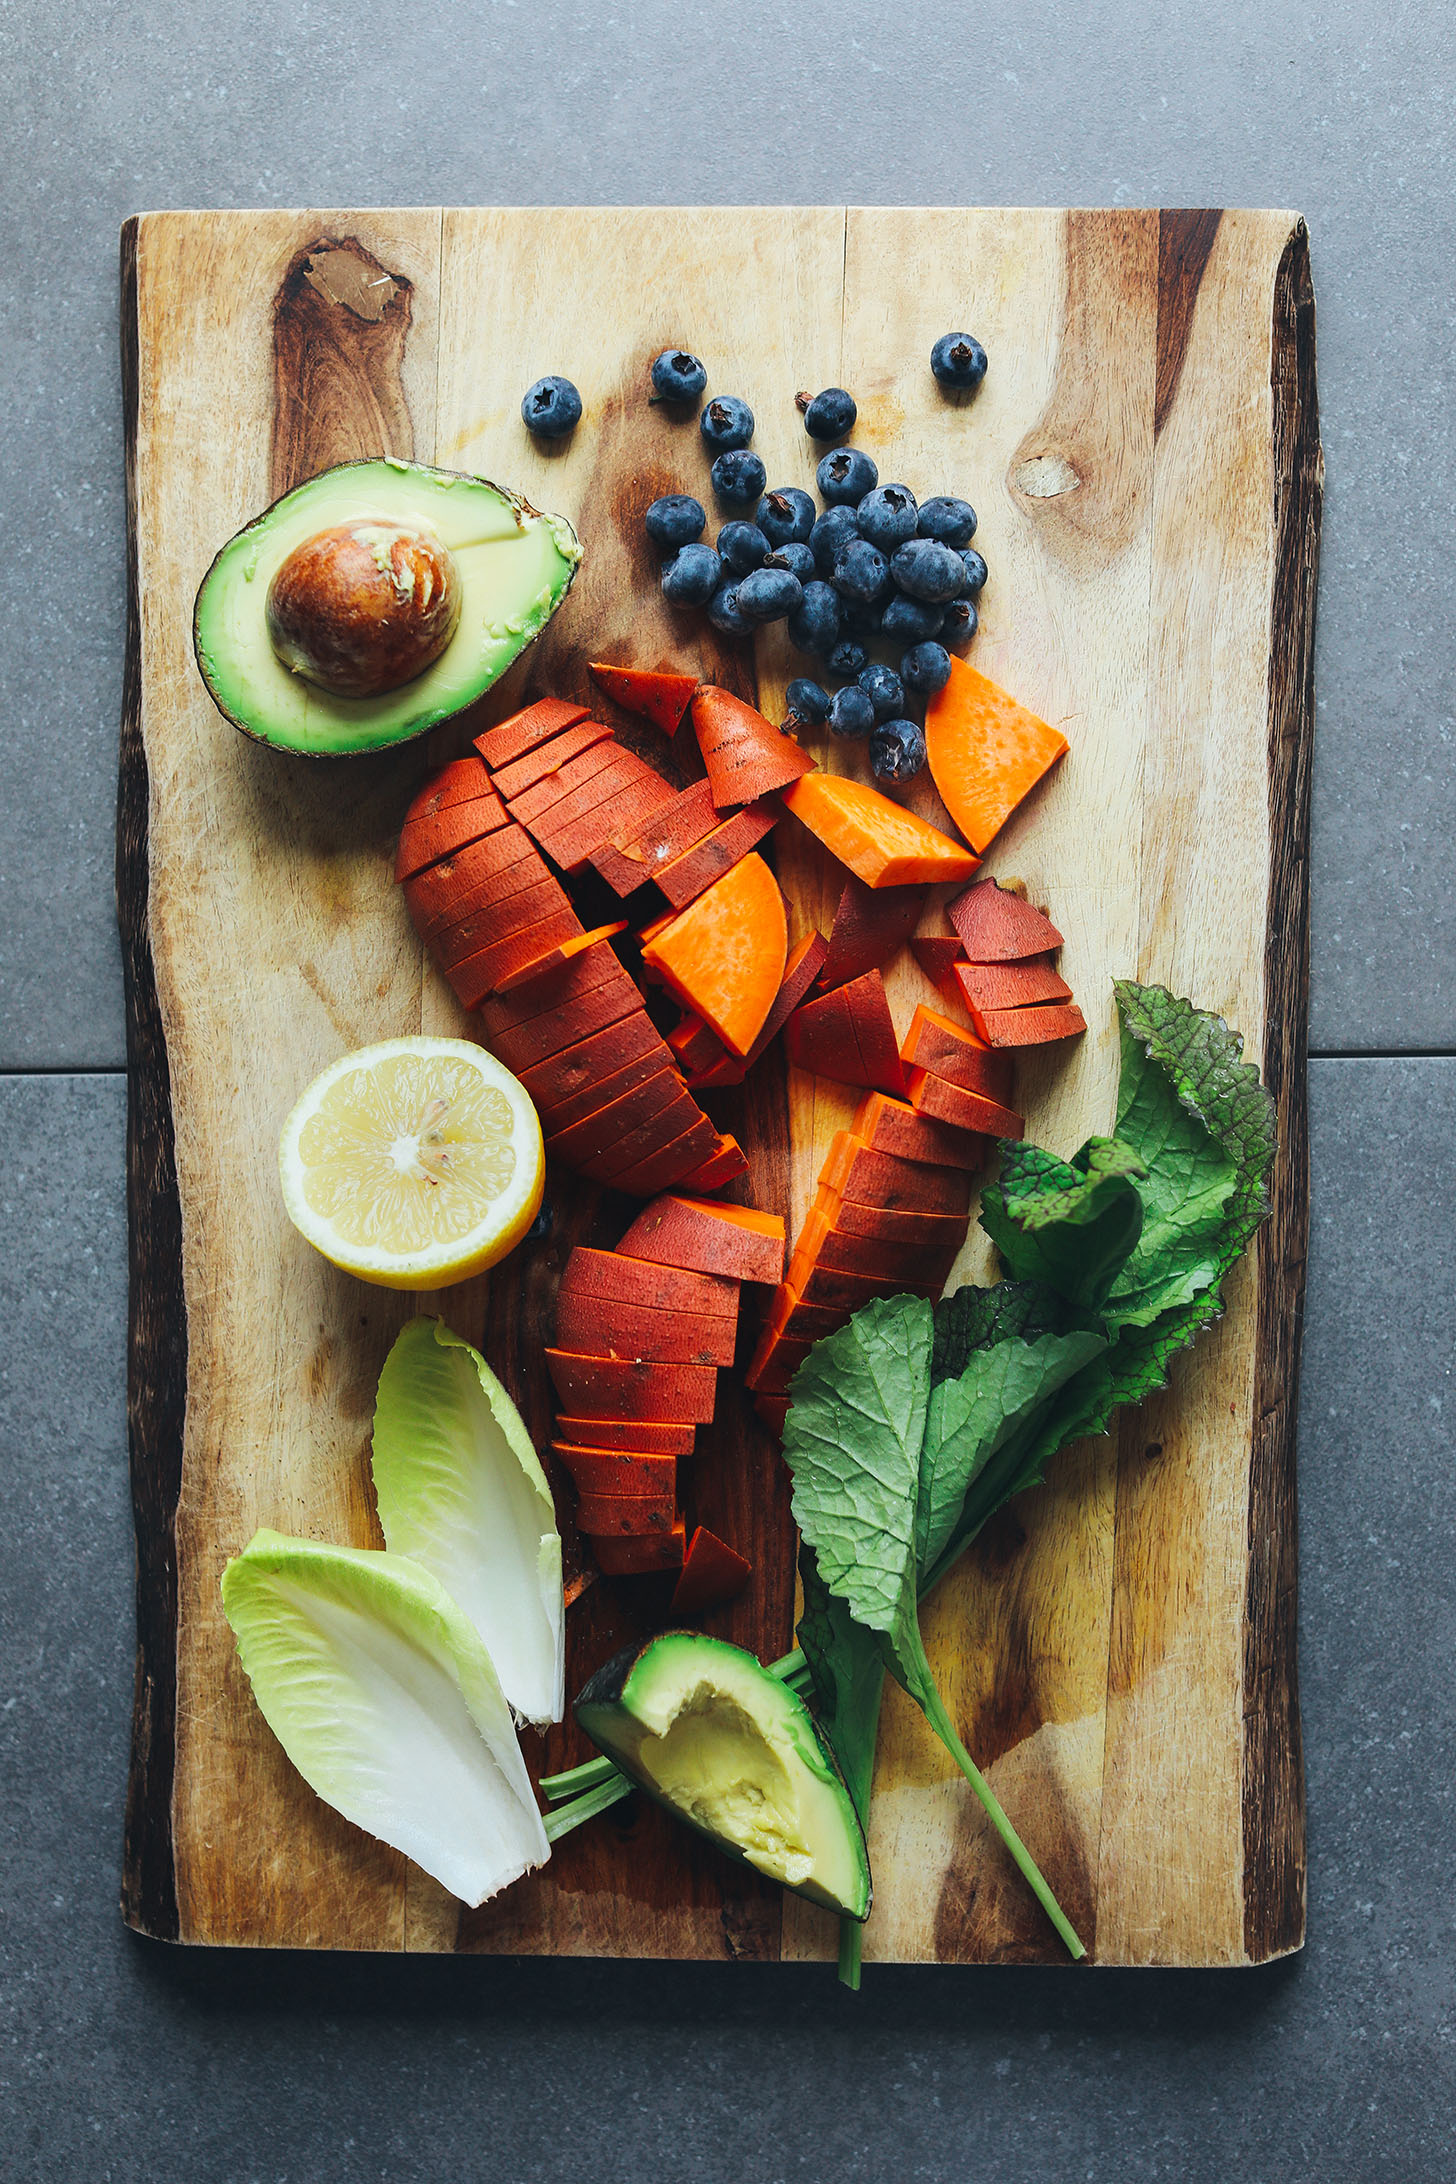 Wood cutting board featuring avocado, blueberries, sweet potato, lemon, endive, and mustard greens for a Vegan Breakfast Salad